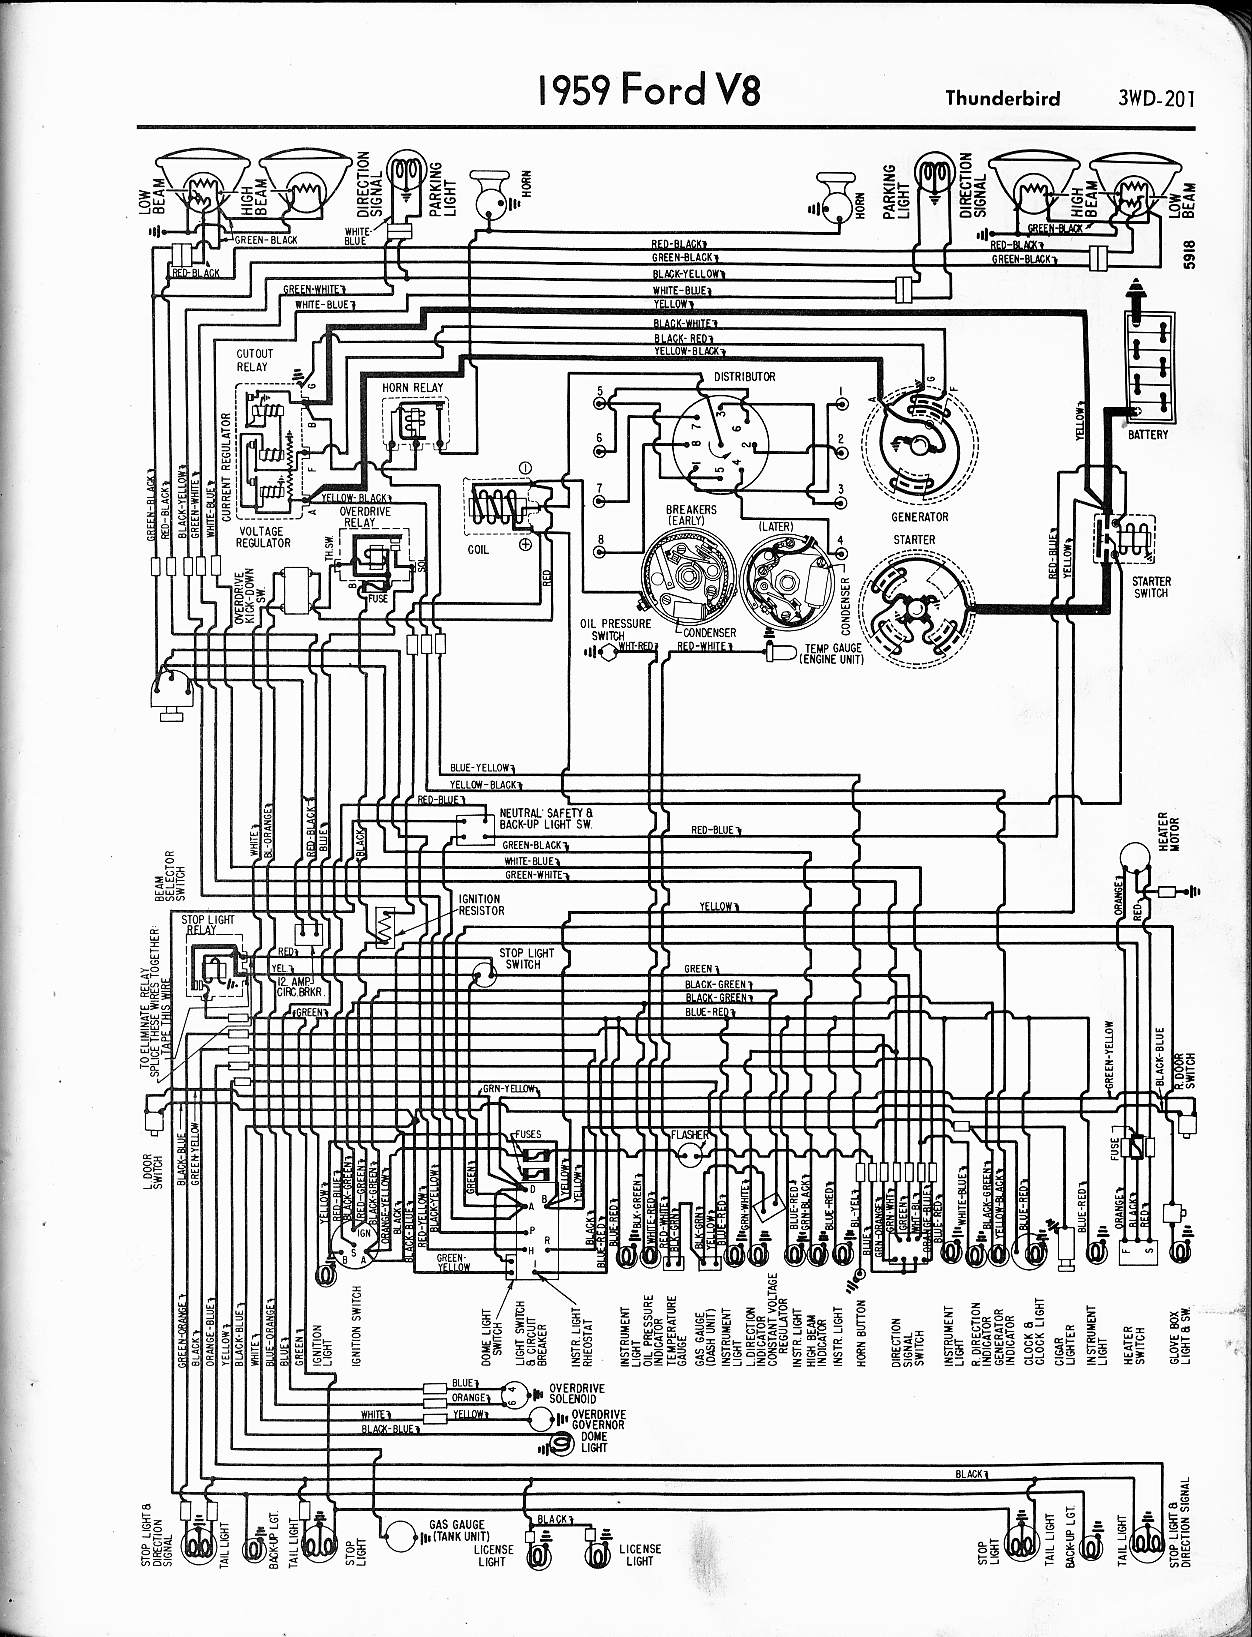 Wiring Diagram Likewise 1956 Ford Car On Chevy Light Switch 1957 Headlight Library